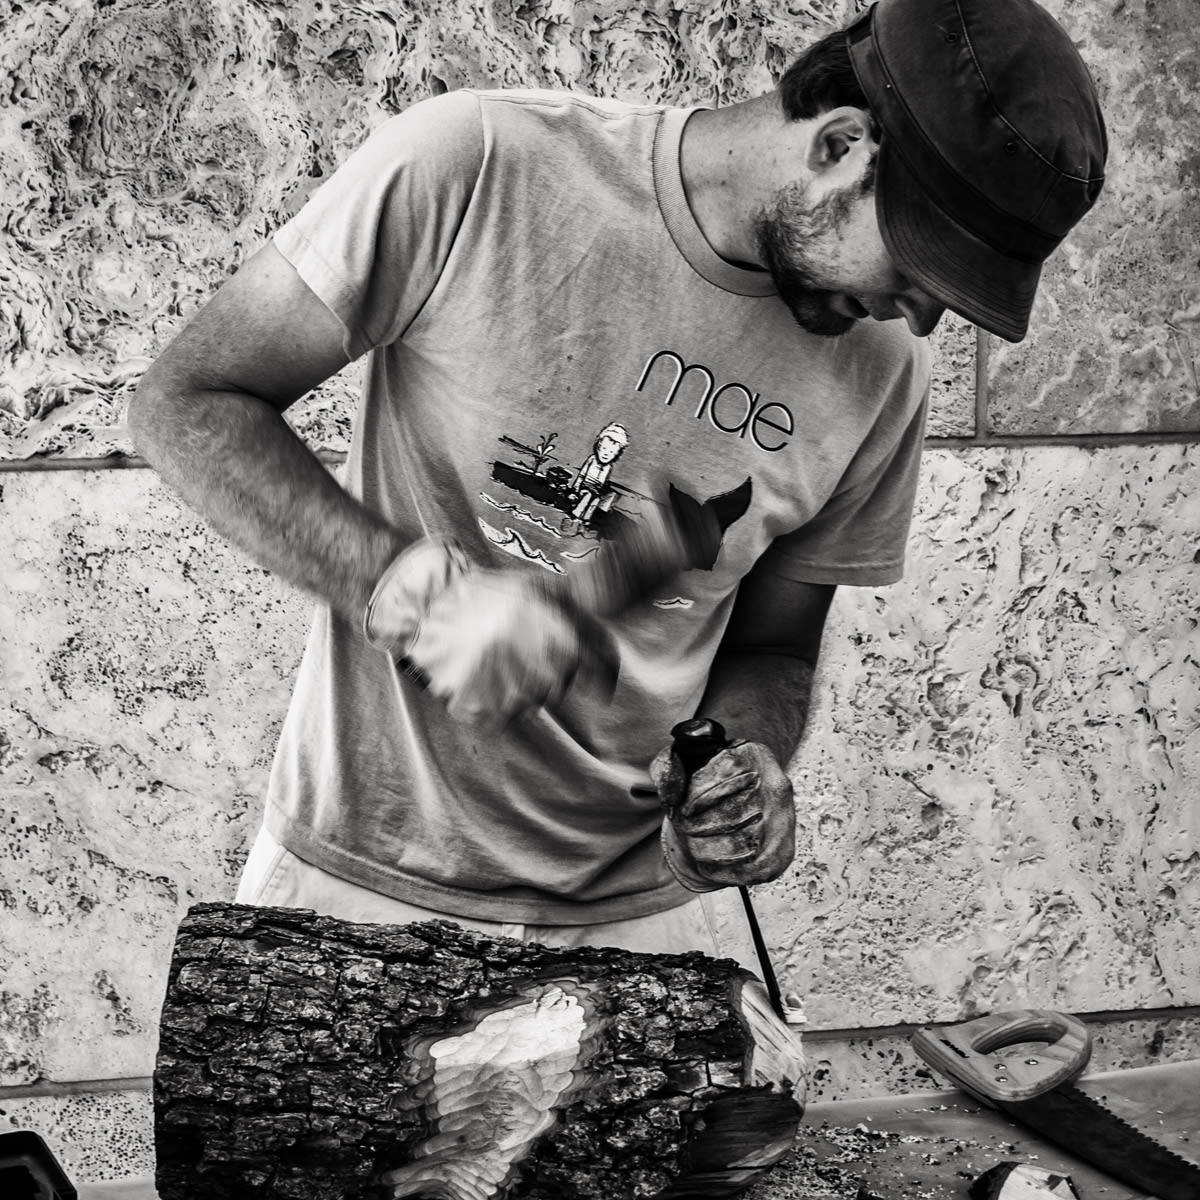 An artisan works on a carving at the Dallas City Arts Festival.